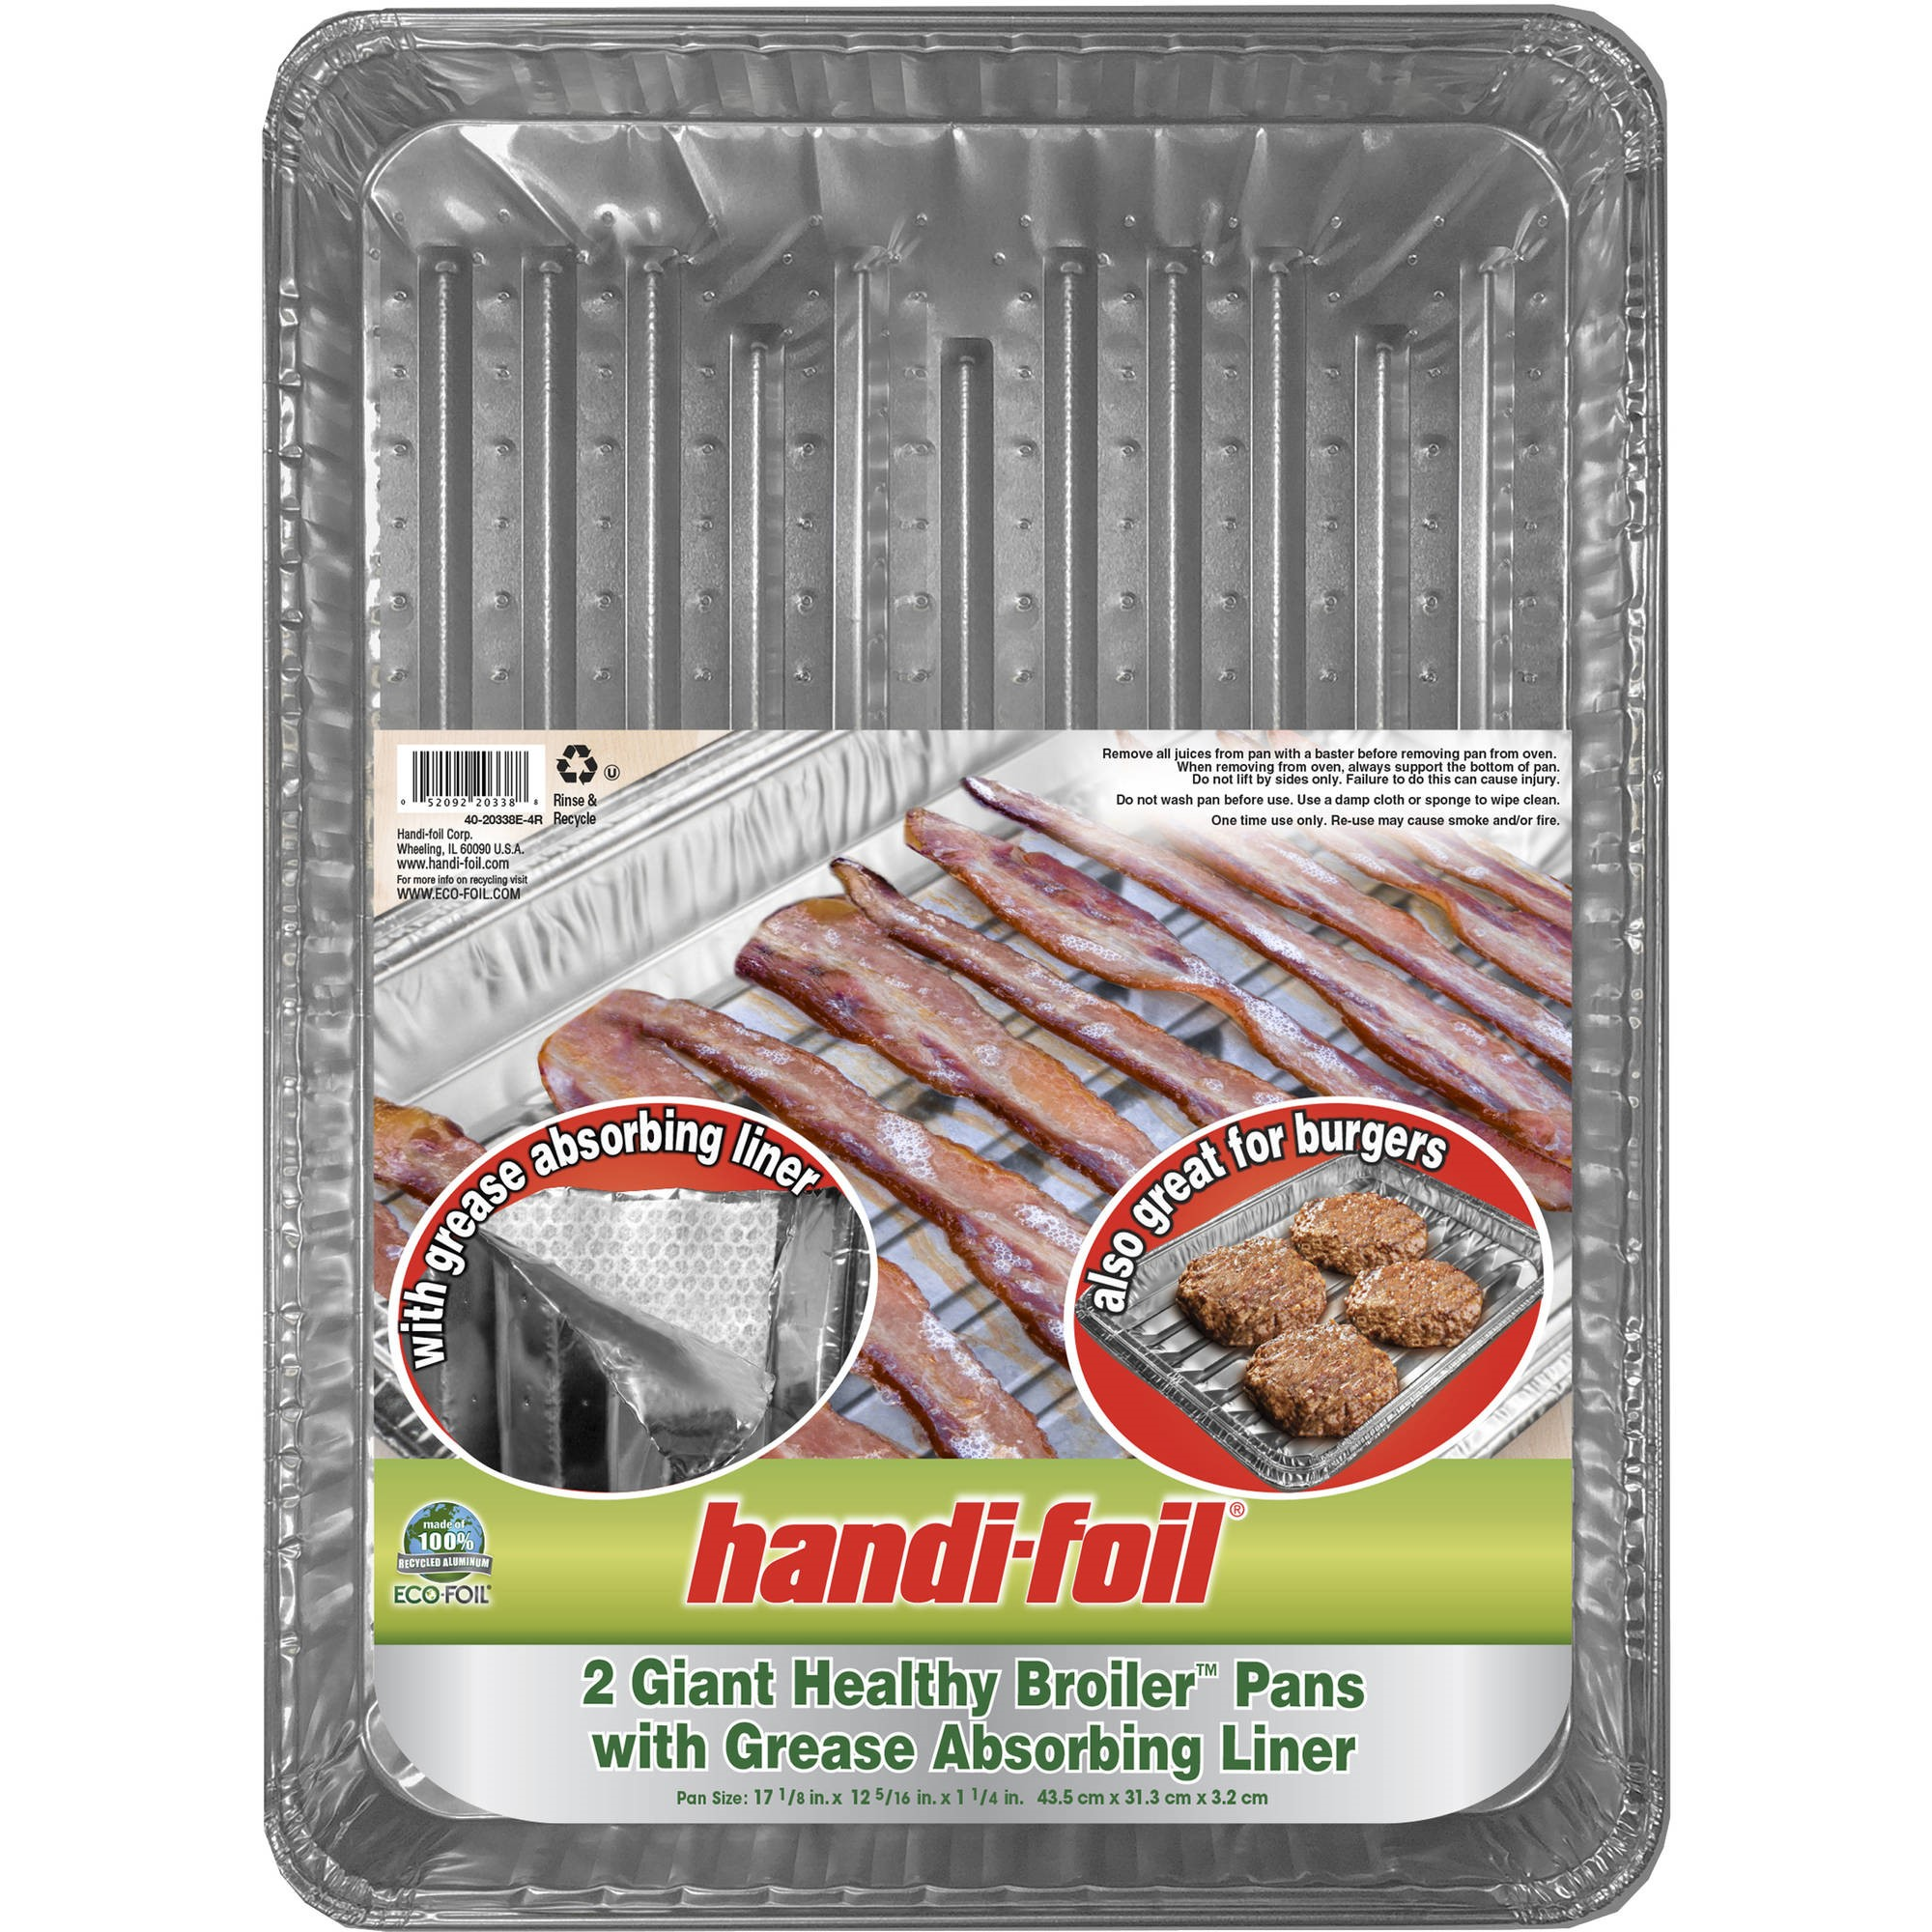 Giant Healthy Broiler Bacon Pan, 2-Pack